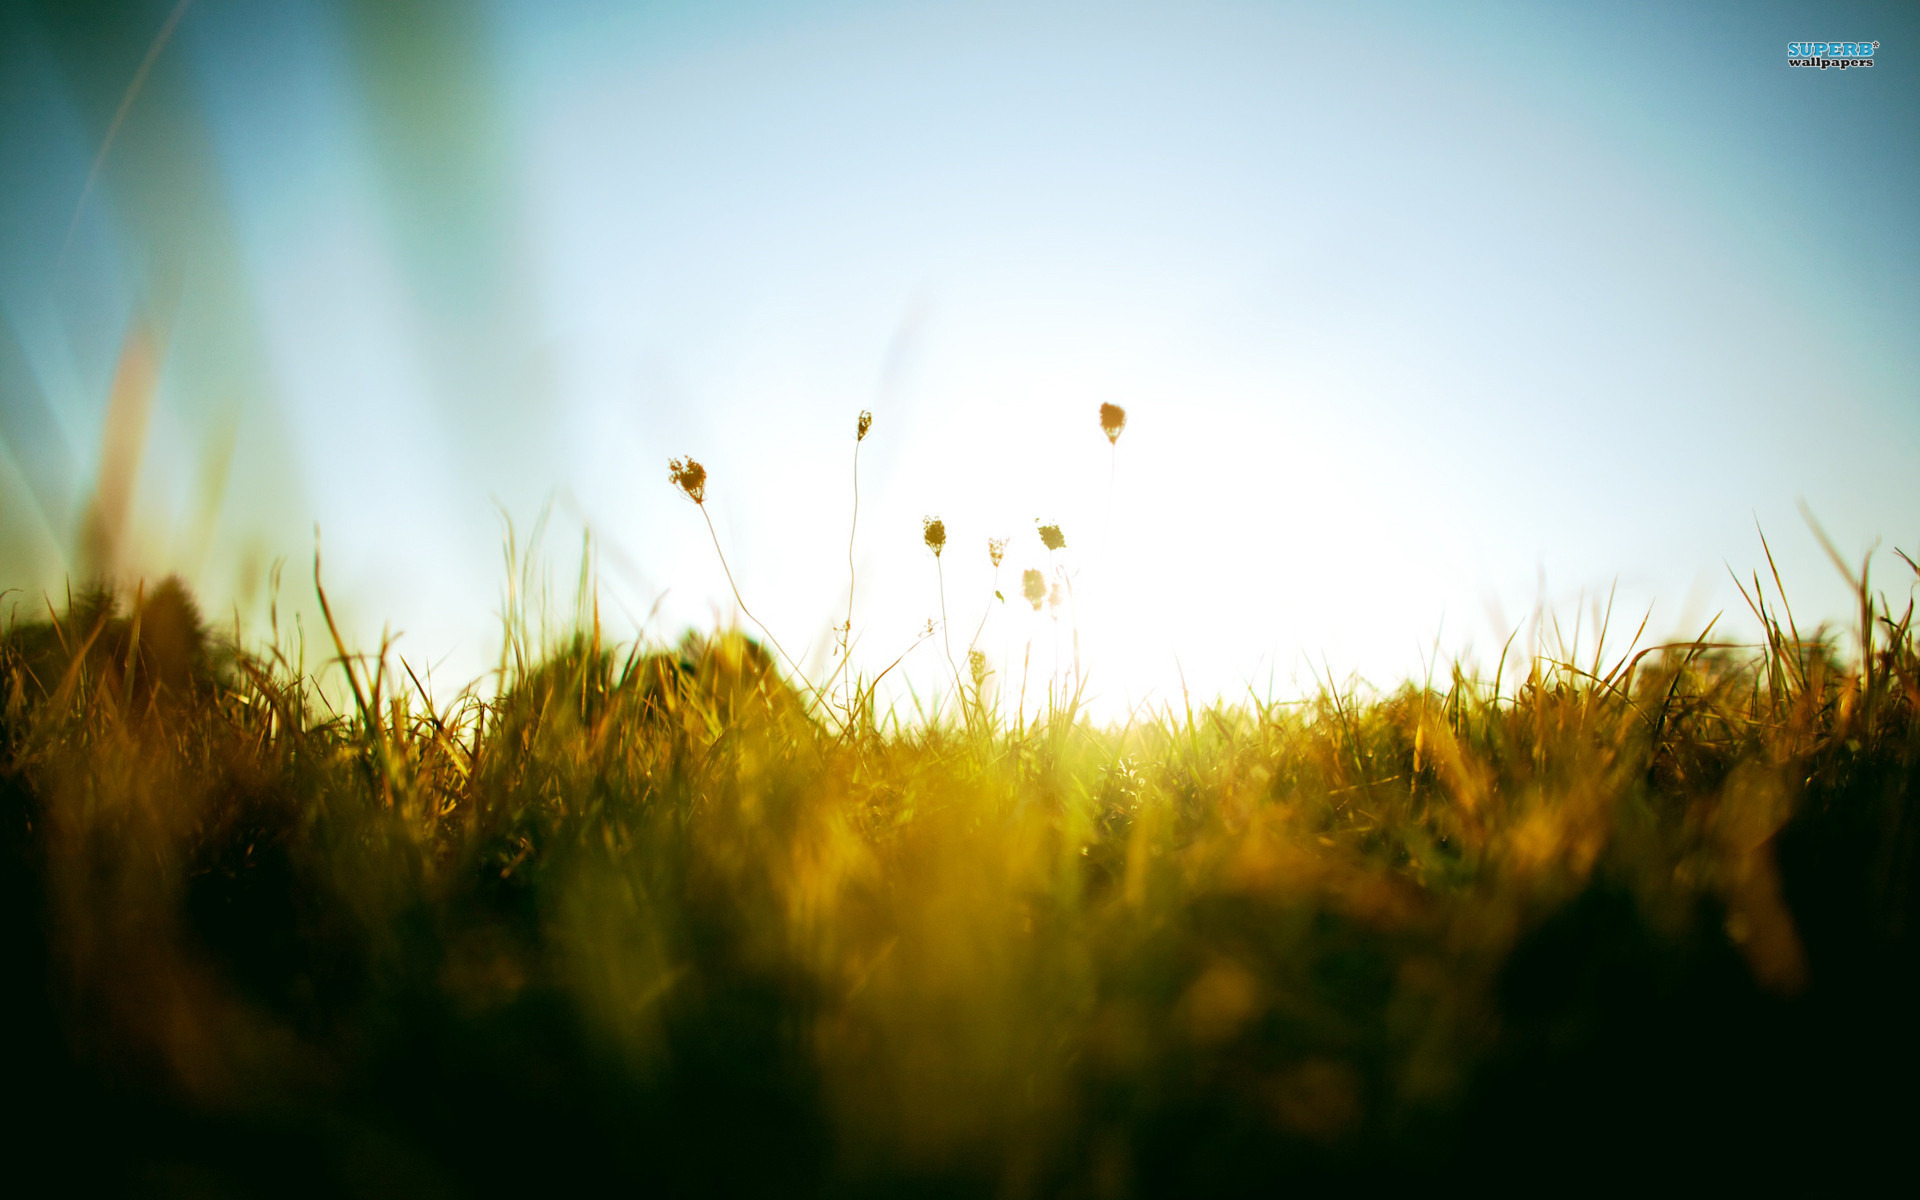 Excellent Green Grass for Sunset Moment Romantic Under Blue Sky Photography Wallpaper